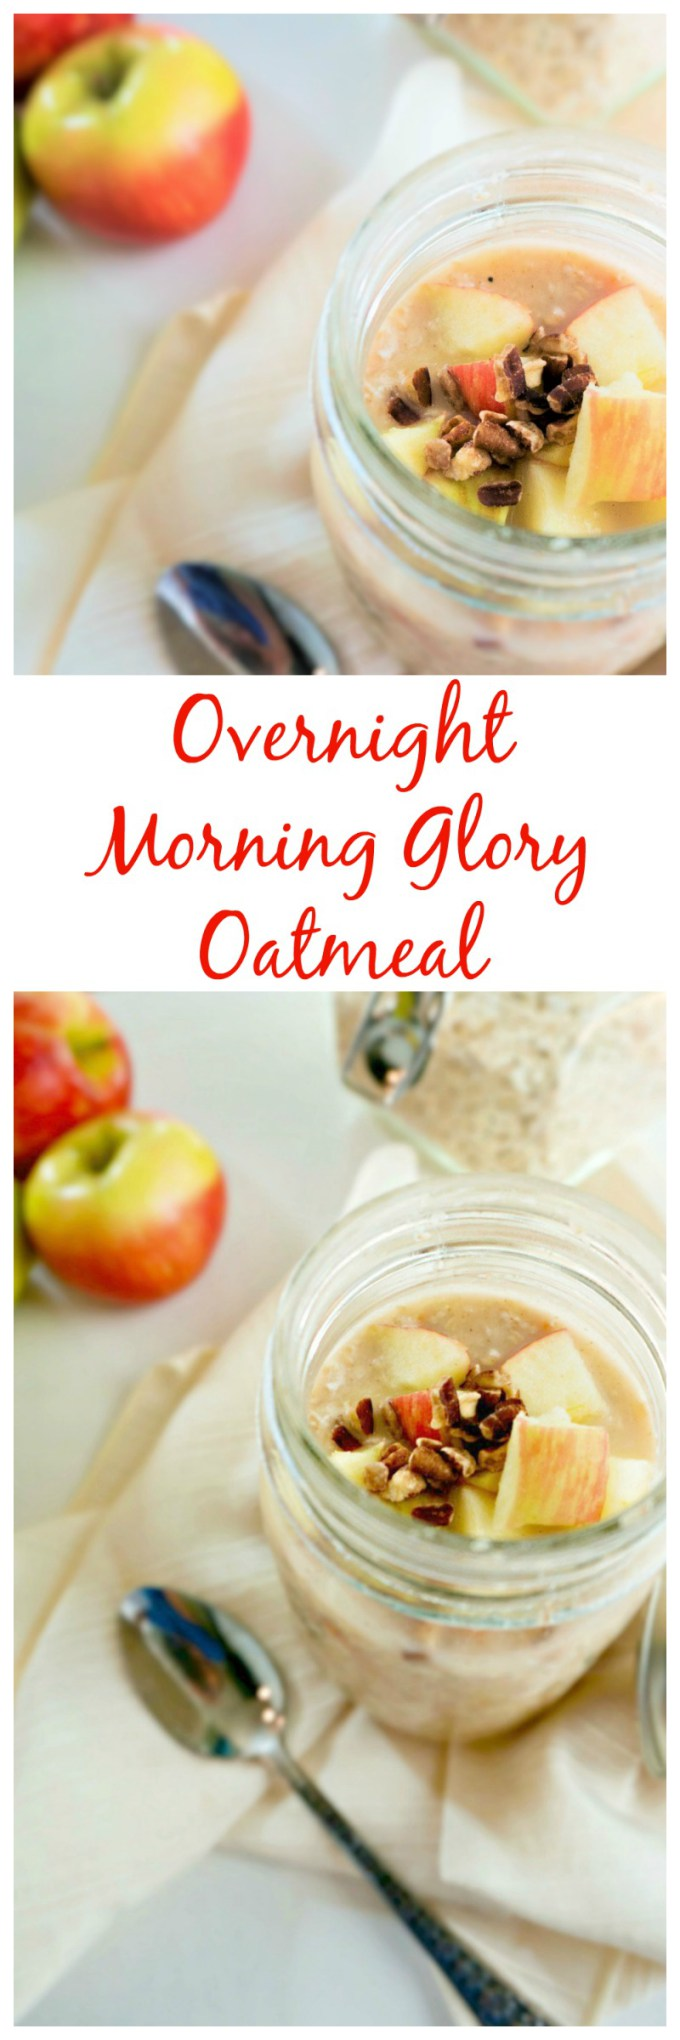 Morning Glory Oatmeal: Enjoy the traditional flavors of Morning Glory Oatmeal in a no-cook oatmeal form for an easy, healthy, breakfast. Perfect for incorporating more fruit and veggies into your diet and for prep-ahead meals. #dairyfree #glutenfree